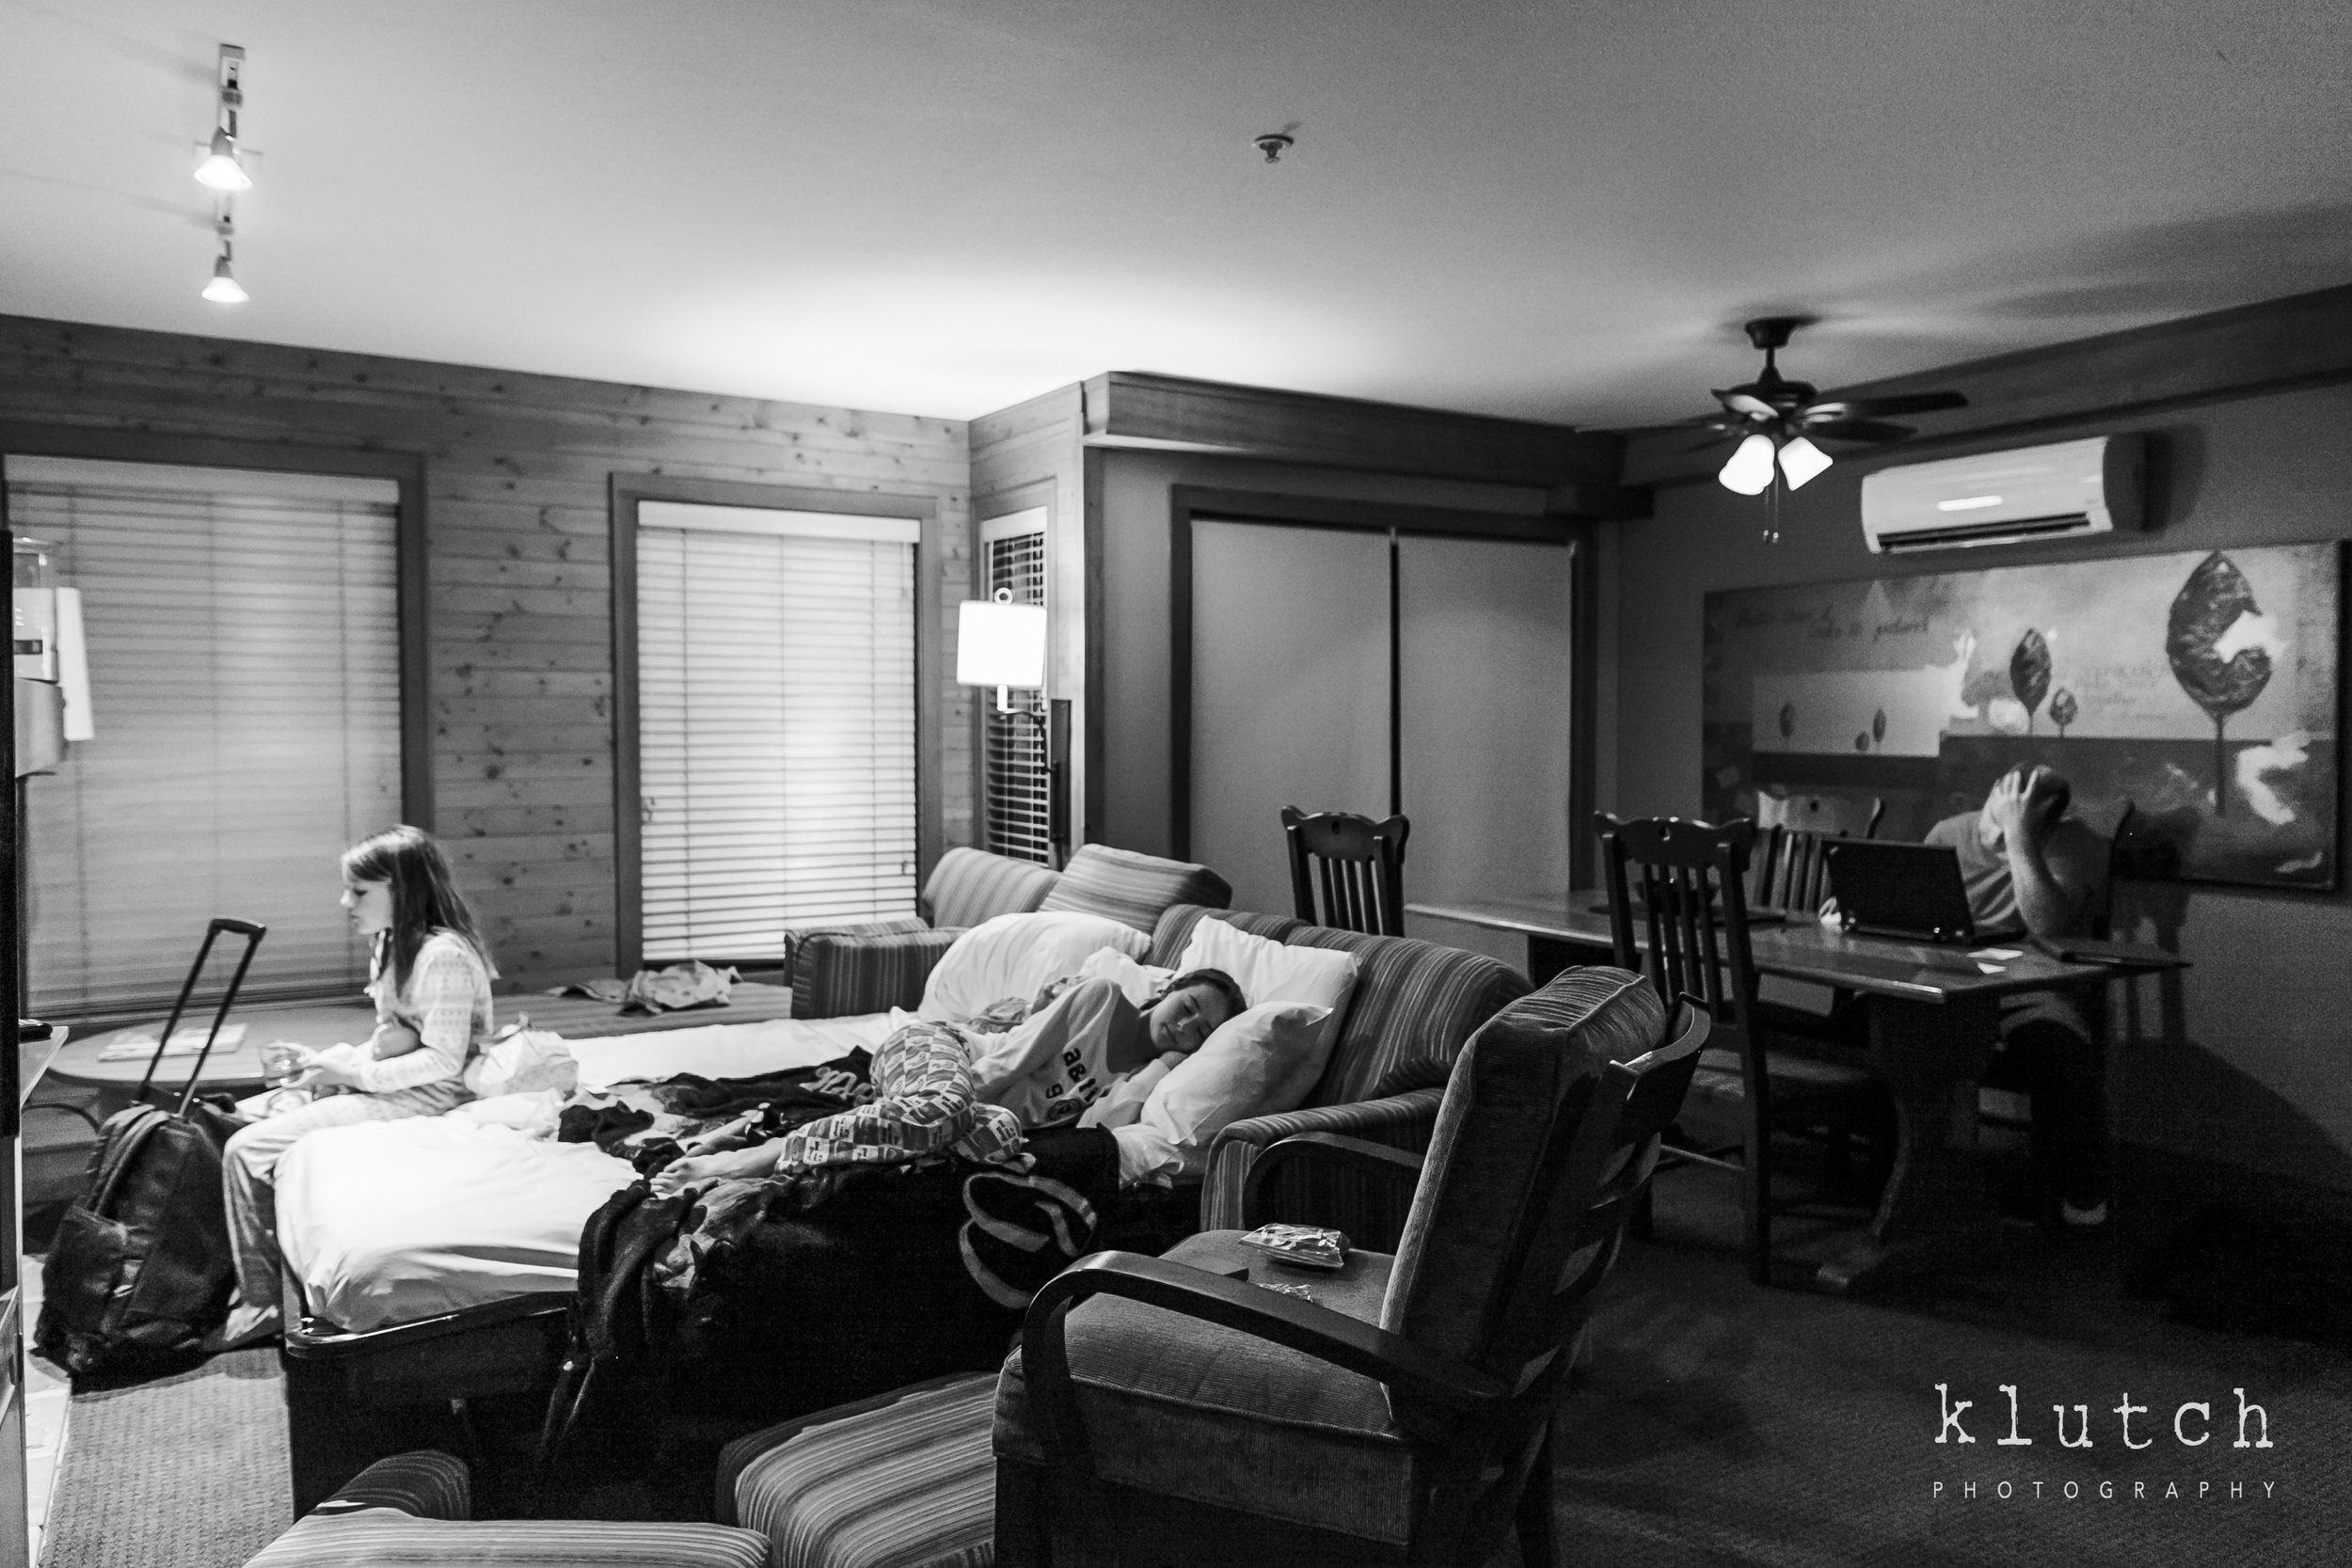 http://www.klutchphotography.com/blog/2018-cabo-san-lucas-mexico-weather-vacation-family resting -5997.jpg